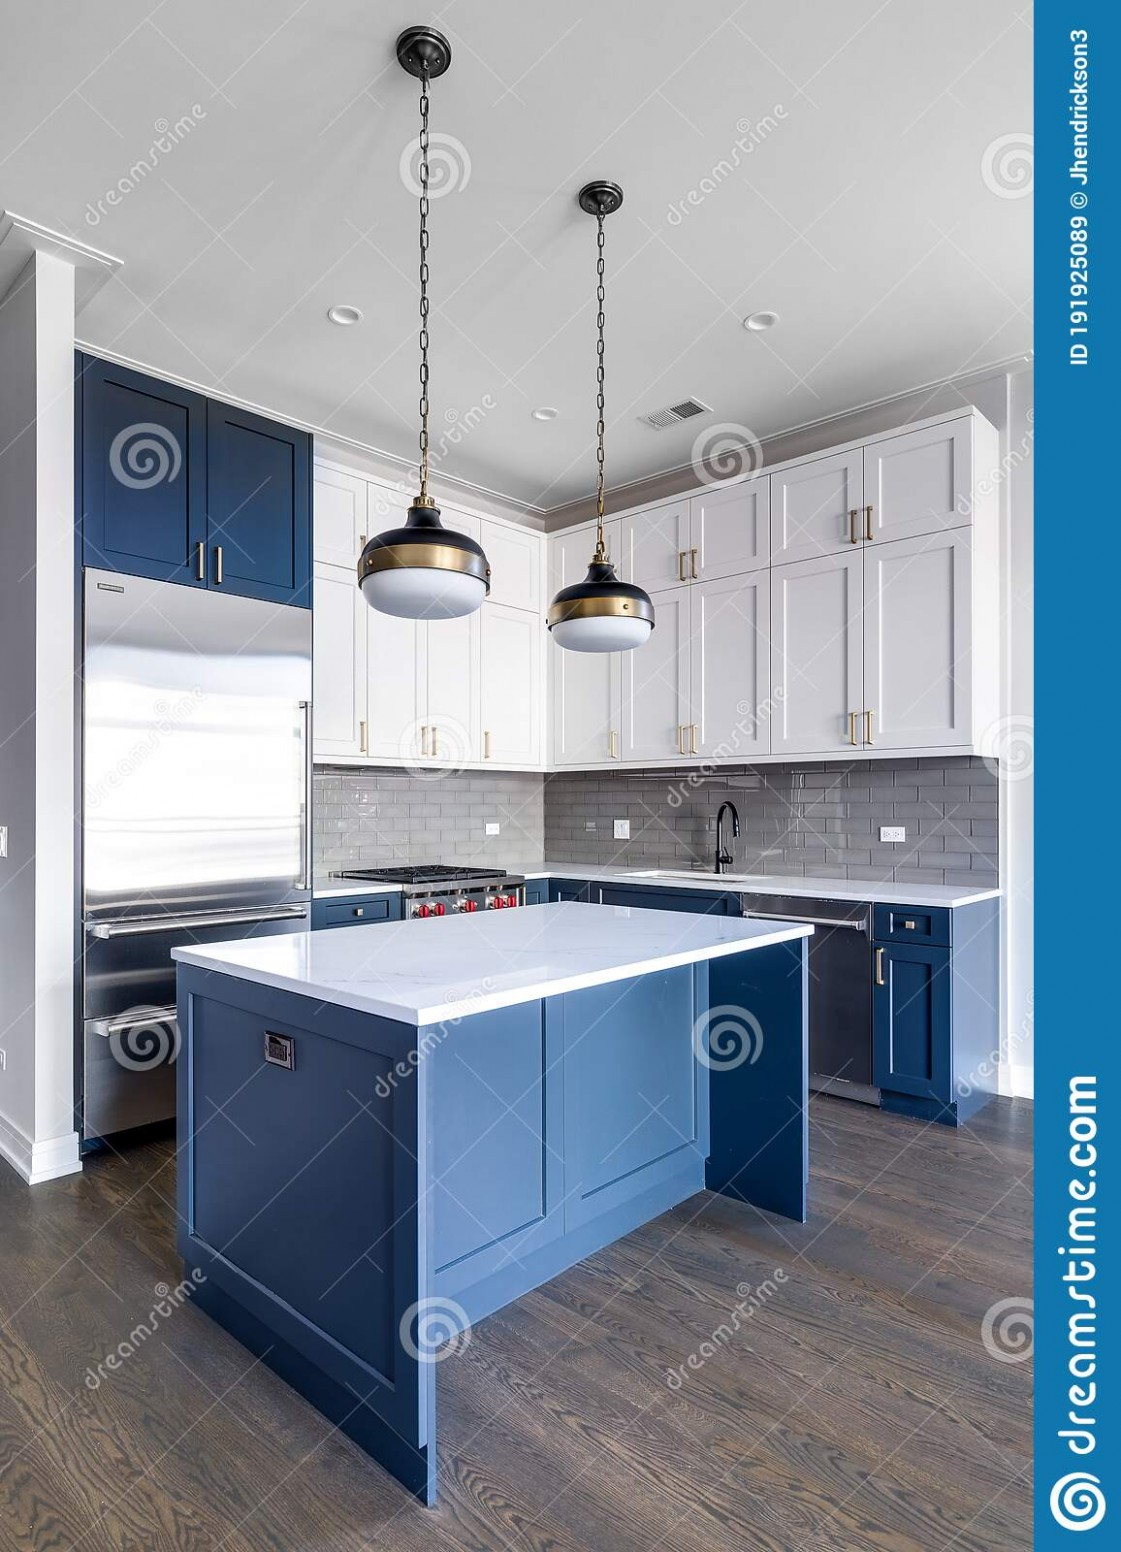 12,12 Blue Cabinets Photos - Free & Royalty-Free Stock Photos from  - Donate Kitchen Cabinets Chicago